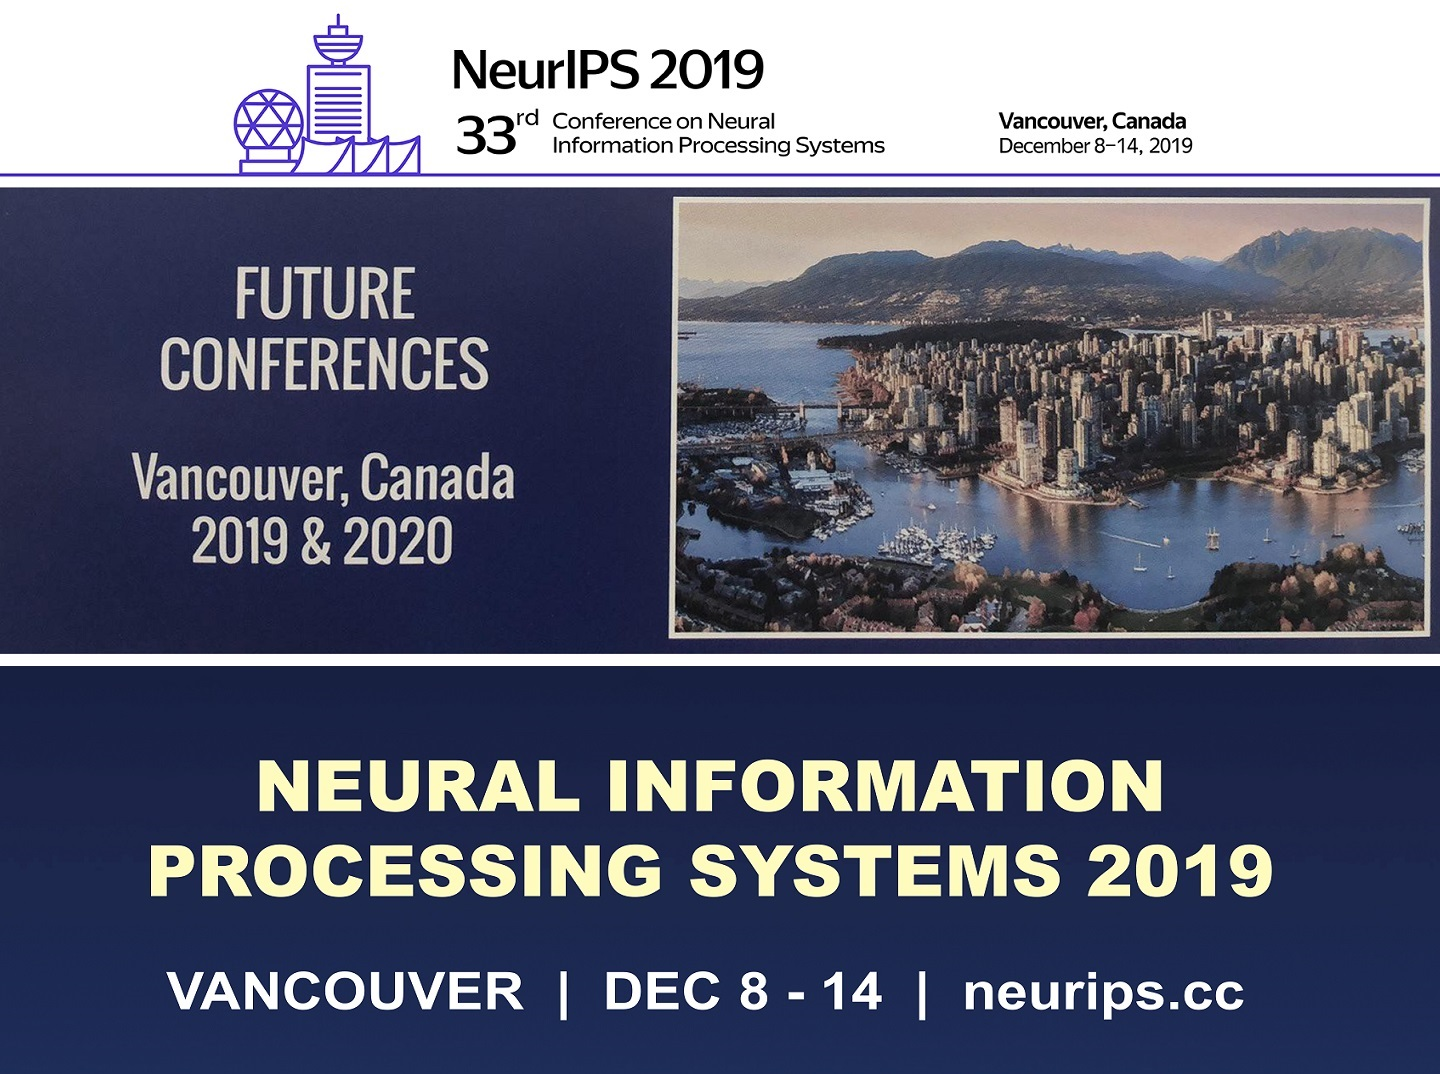 The 33rd Annual Conference of NIPS 2019